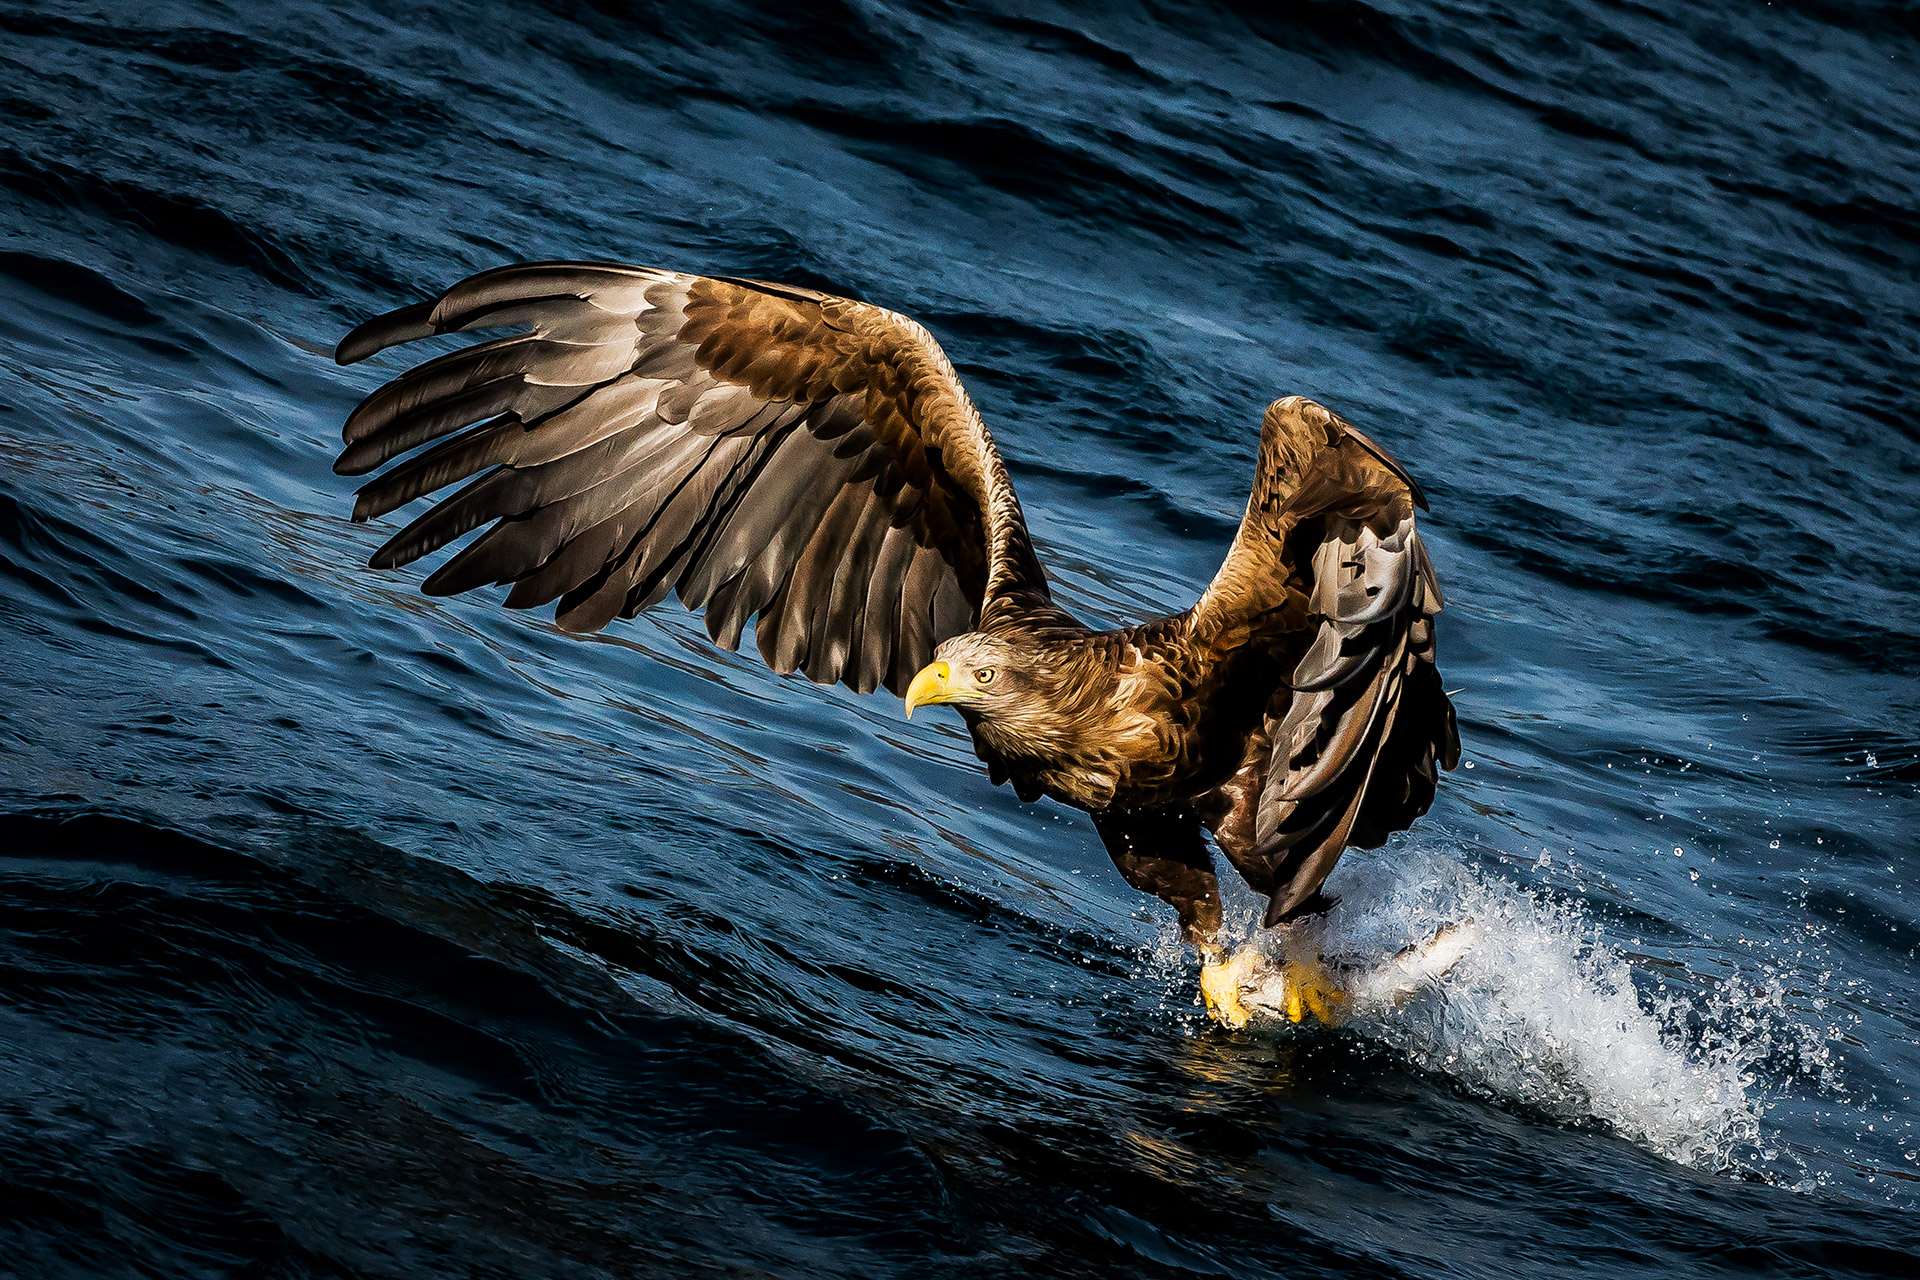 Sea Eagle, Frank Heumann, National Geographic